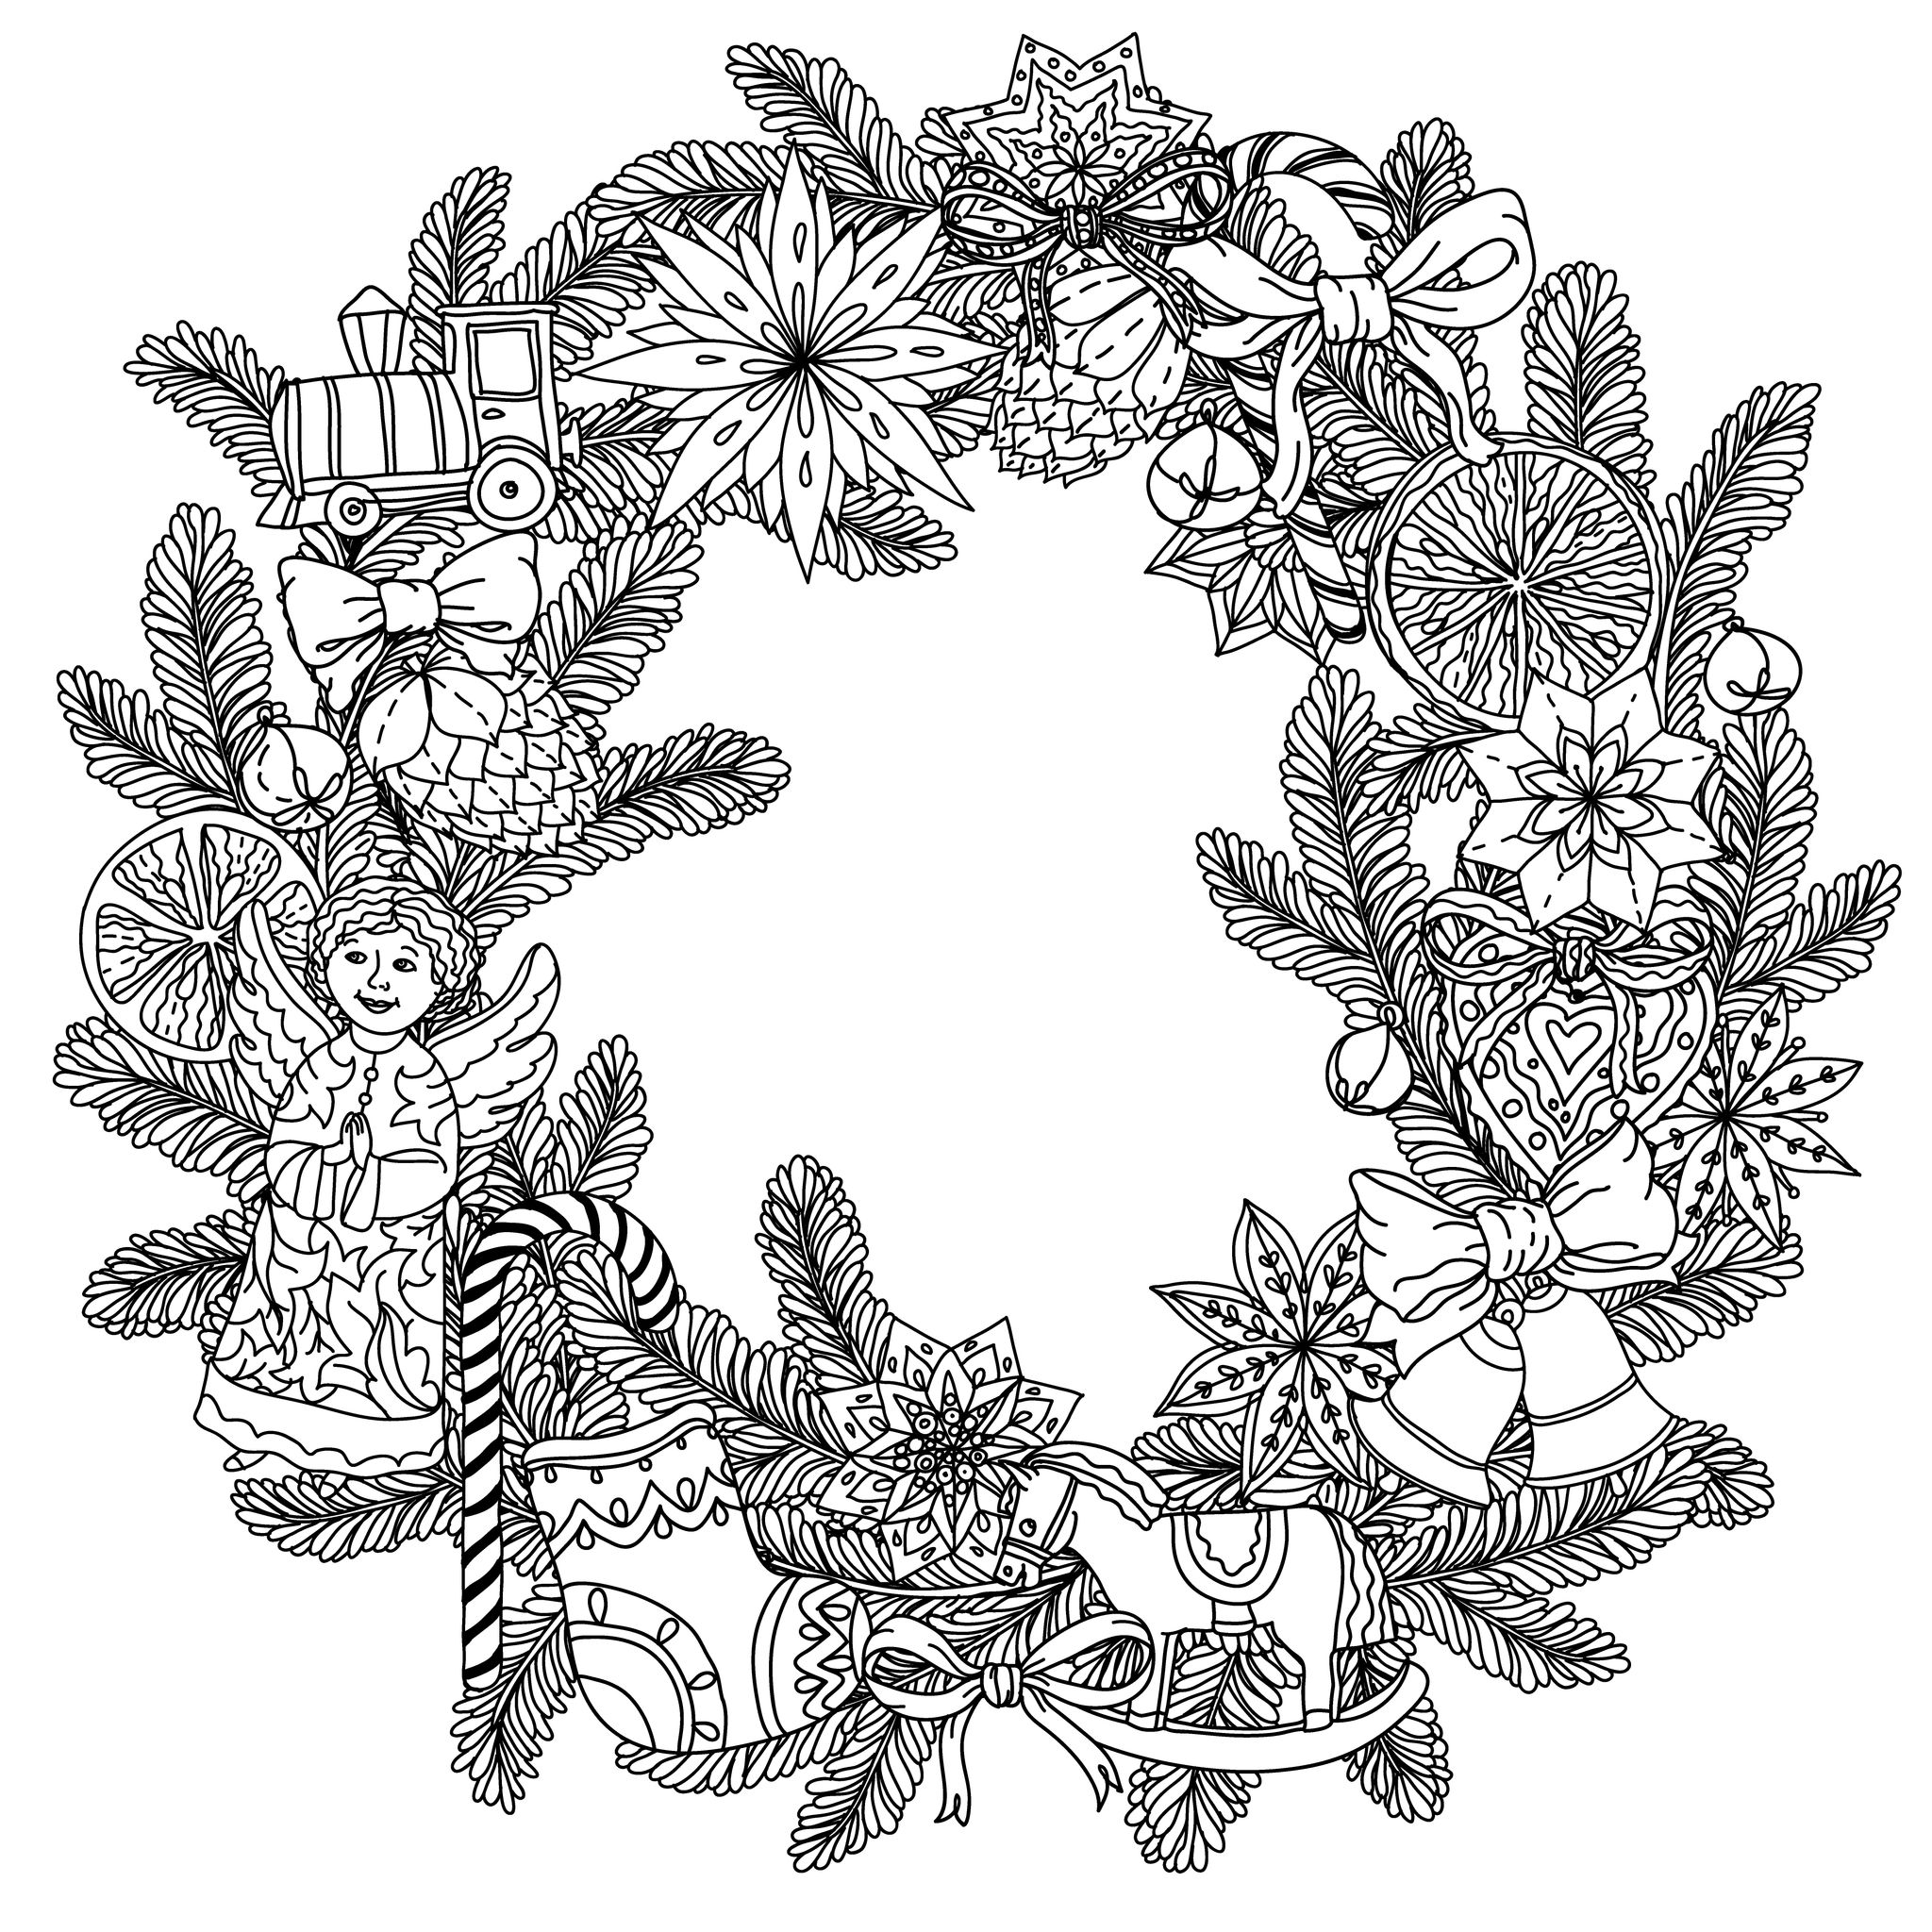 Coloring Adult Christmas Wreath By Mashabr